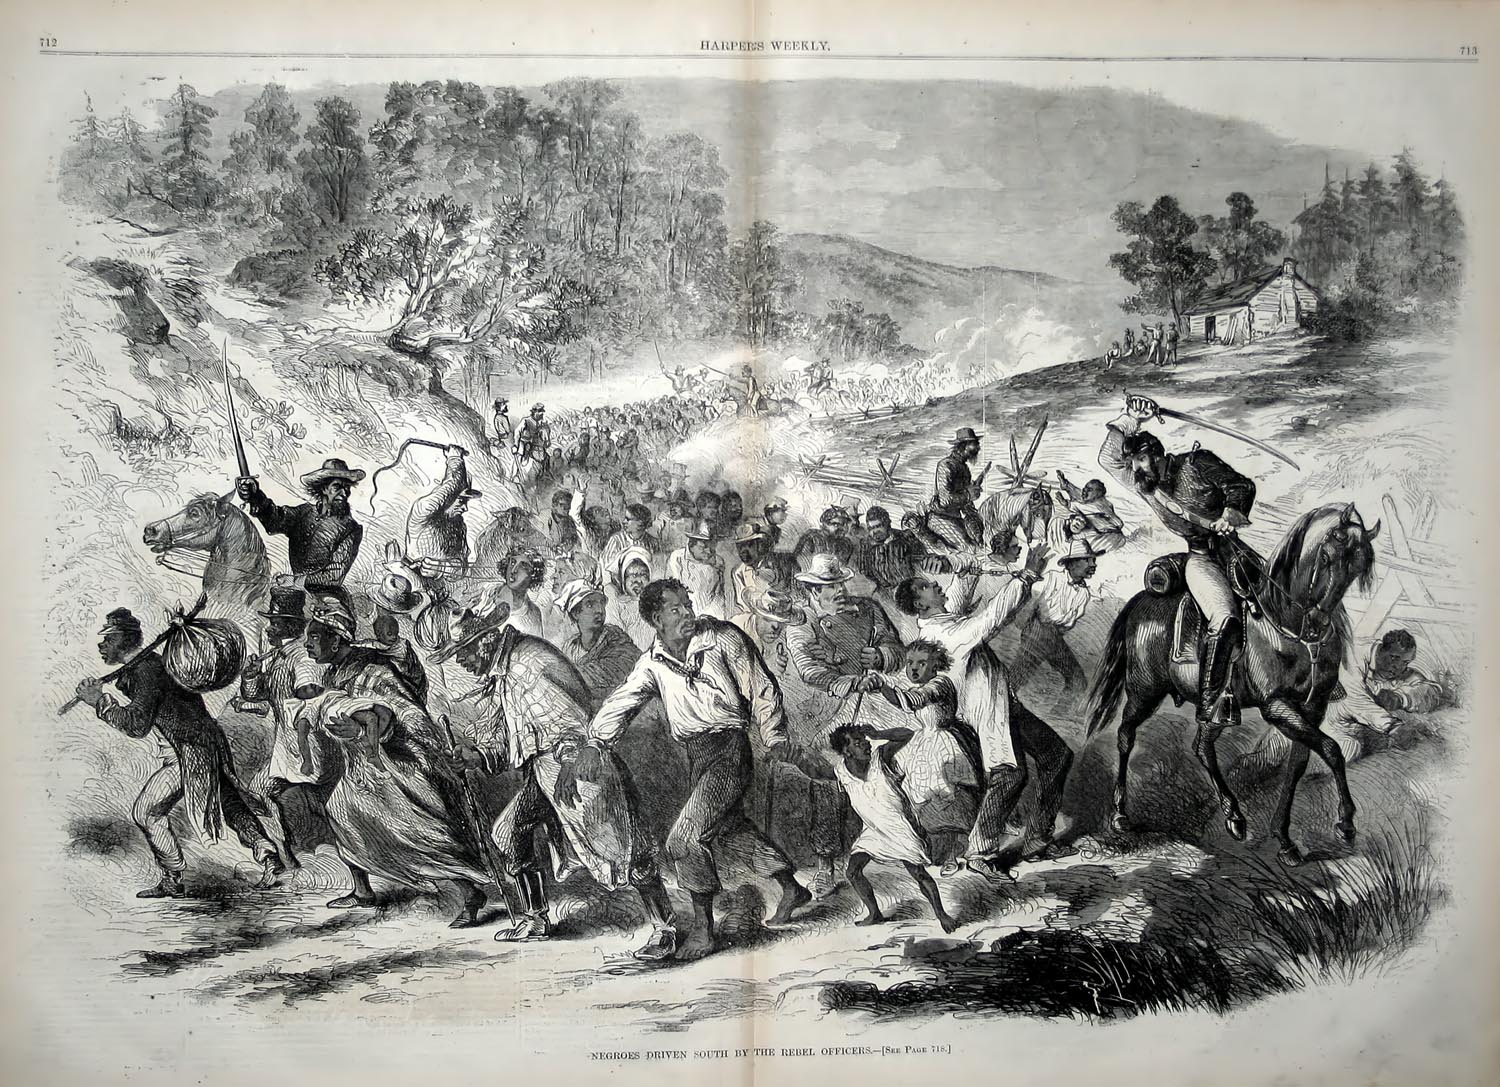 Essay on slavery during the civil war